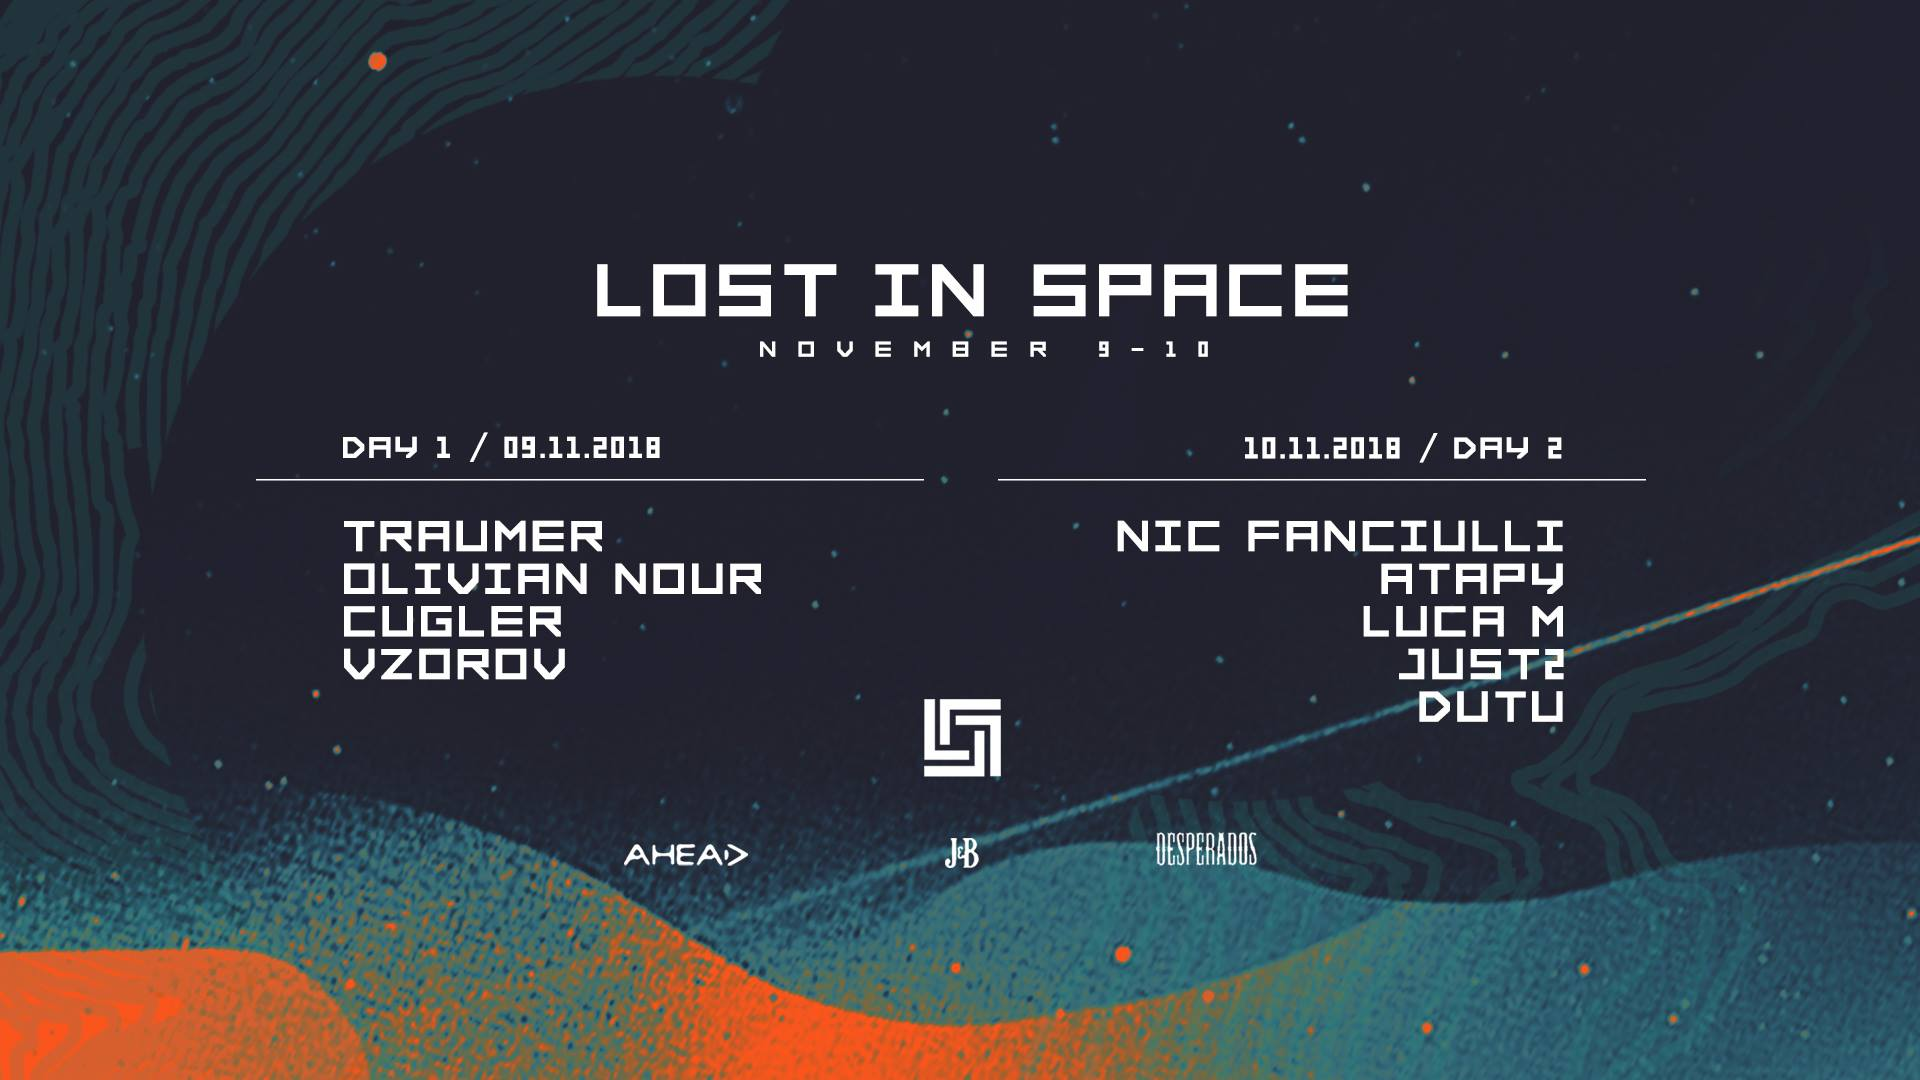 Lost In Space Festival 2018